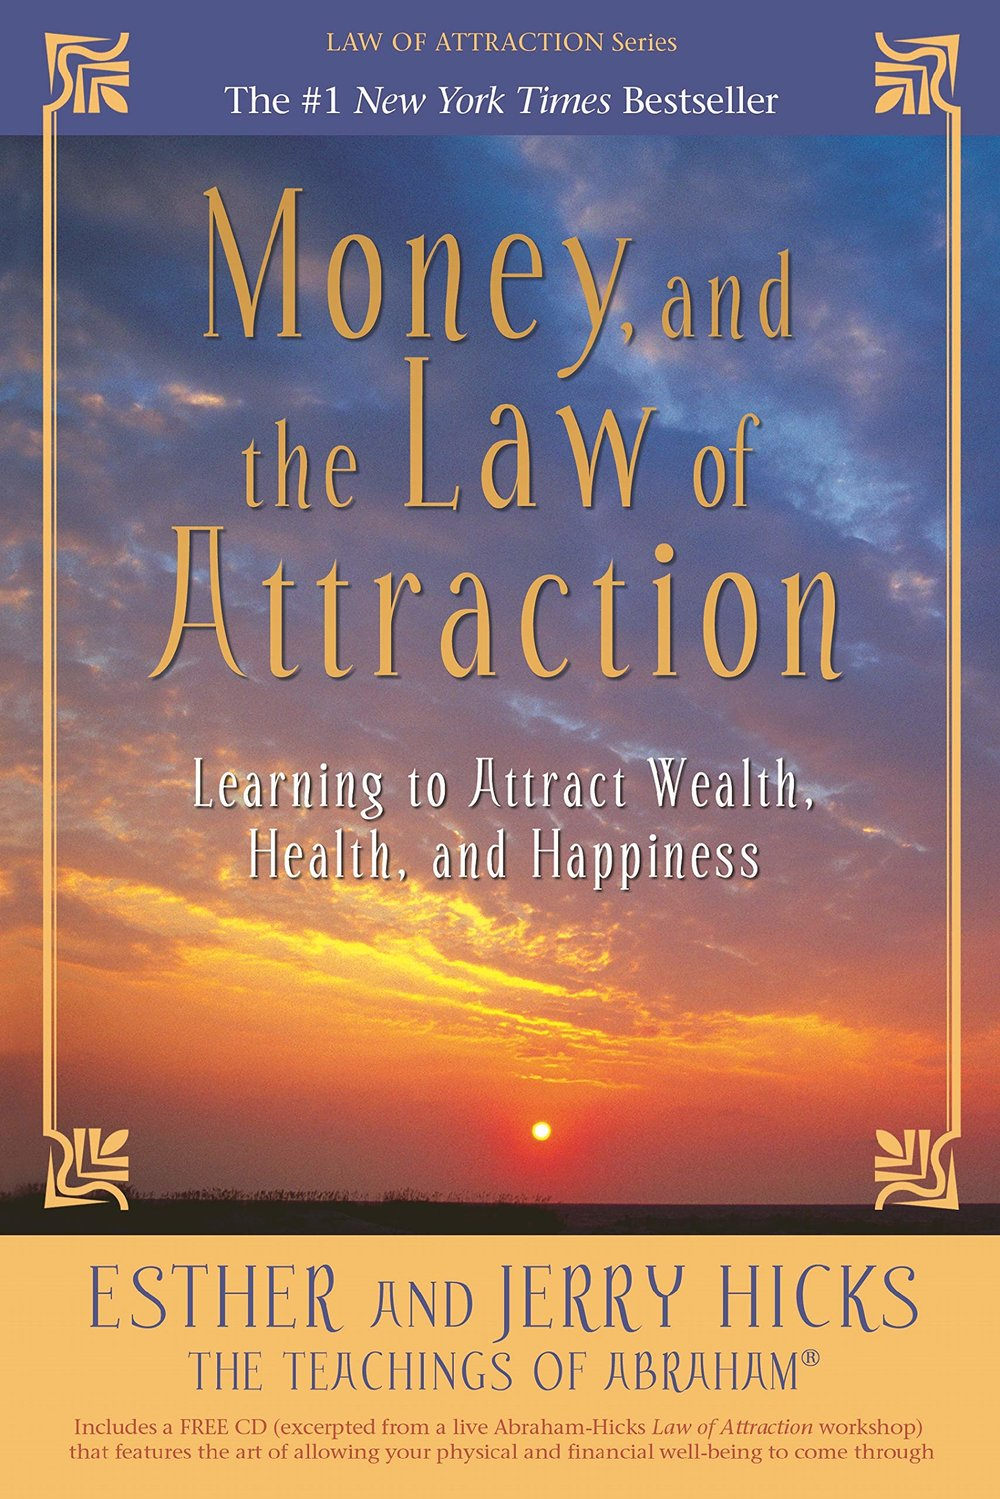 The 9 Books on My Money Mindset Reading List - Money and the Law of Attraction - Full List at www.monicabadiu.com